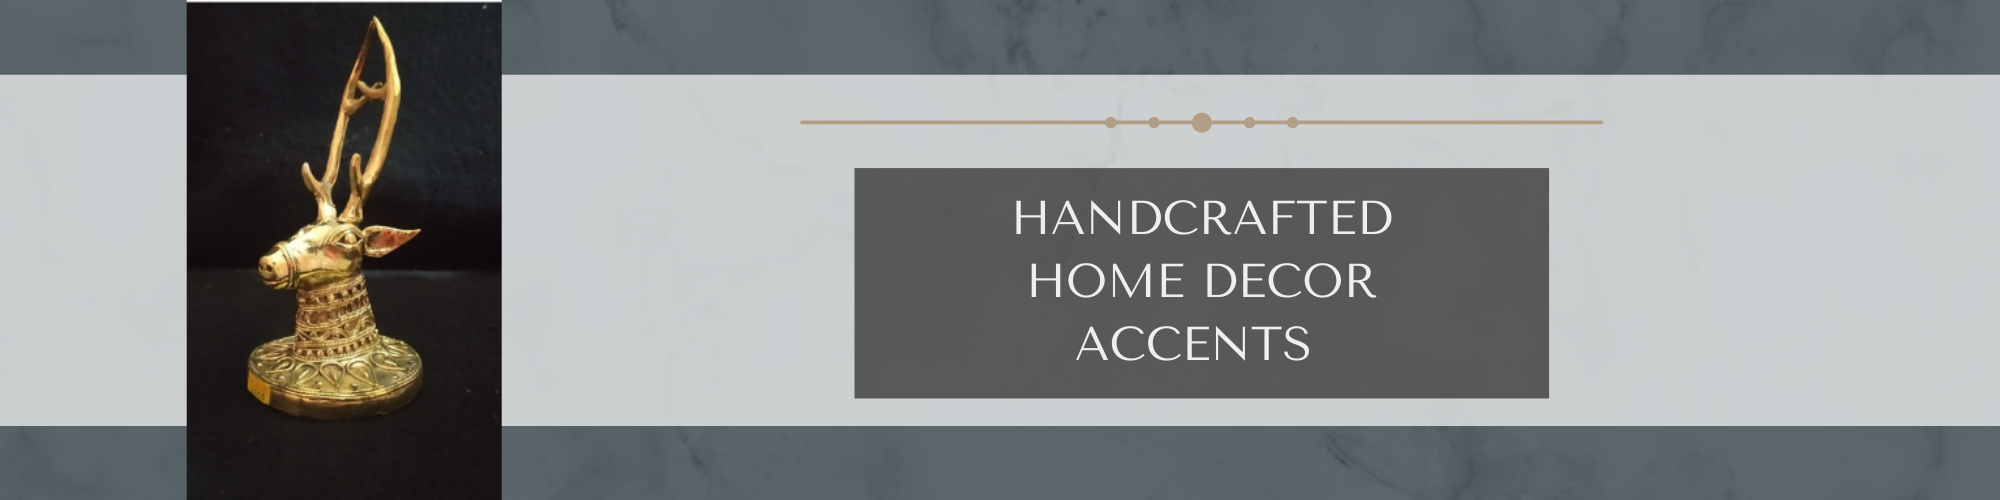 Handcrafted Home Decor Accents